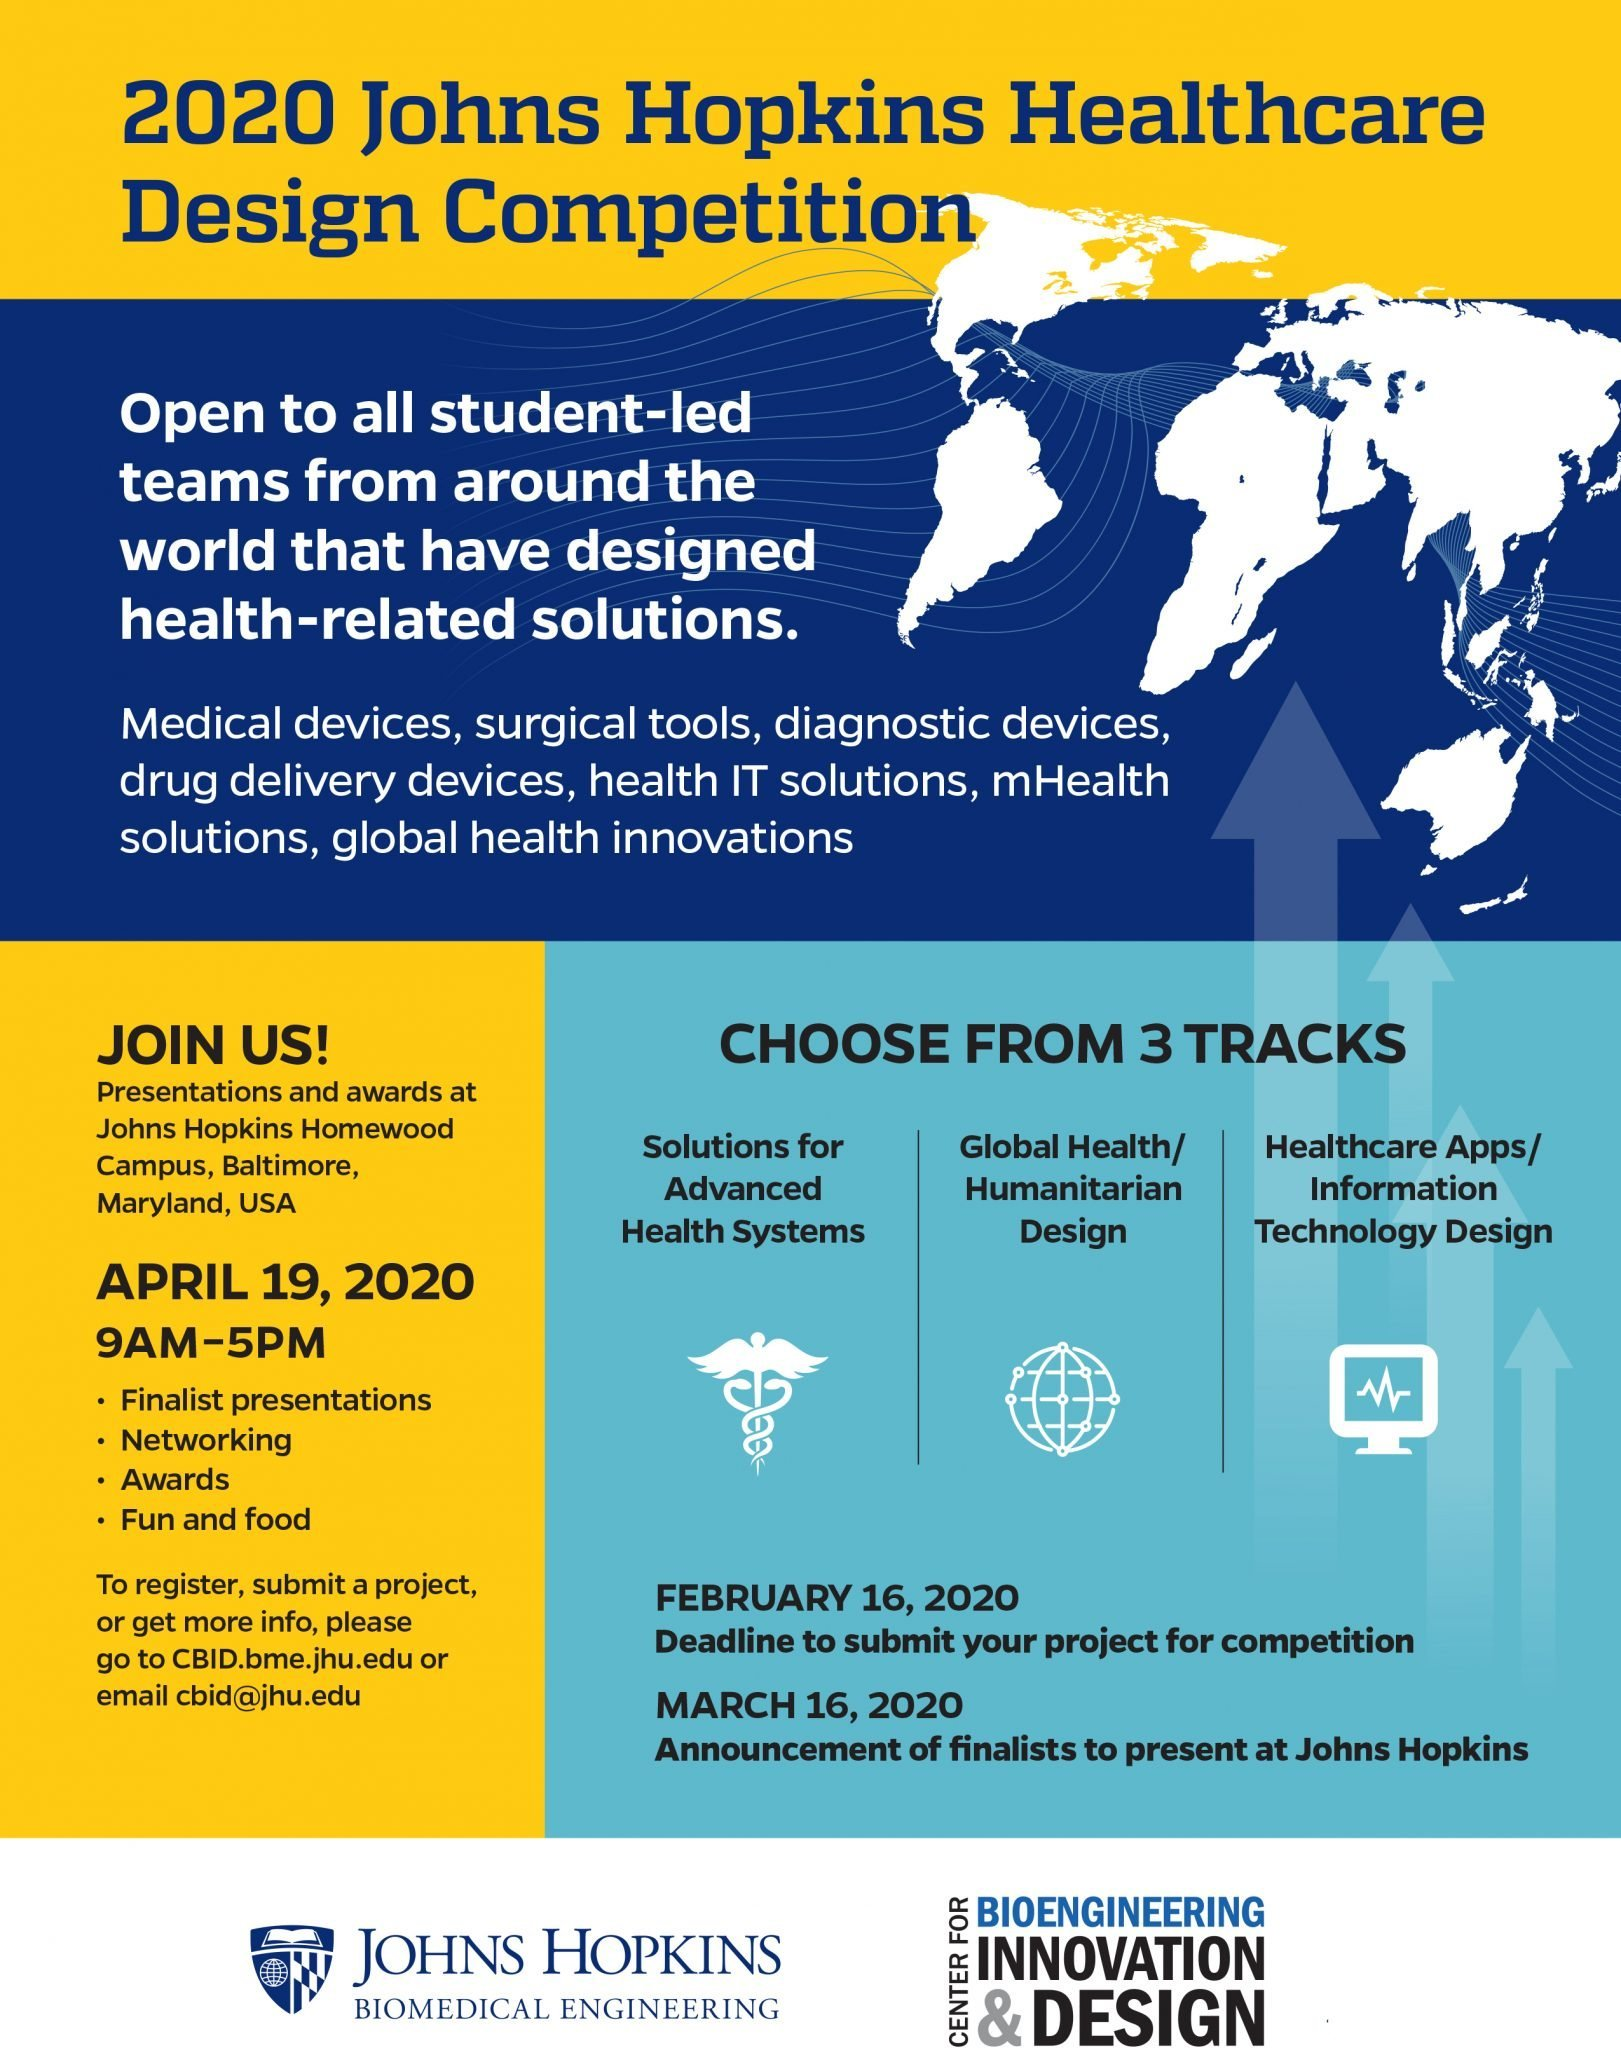 Johns Hopkins Healthcare Design Competition